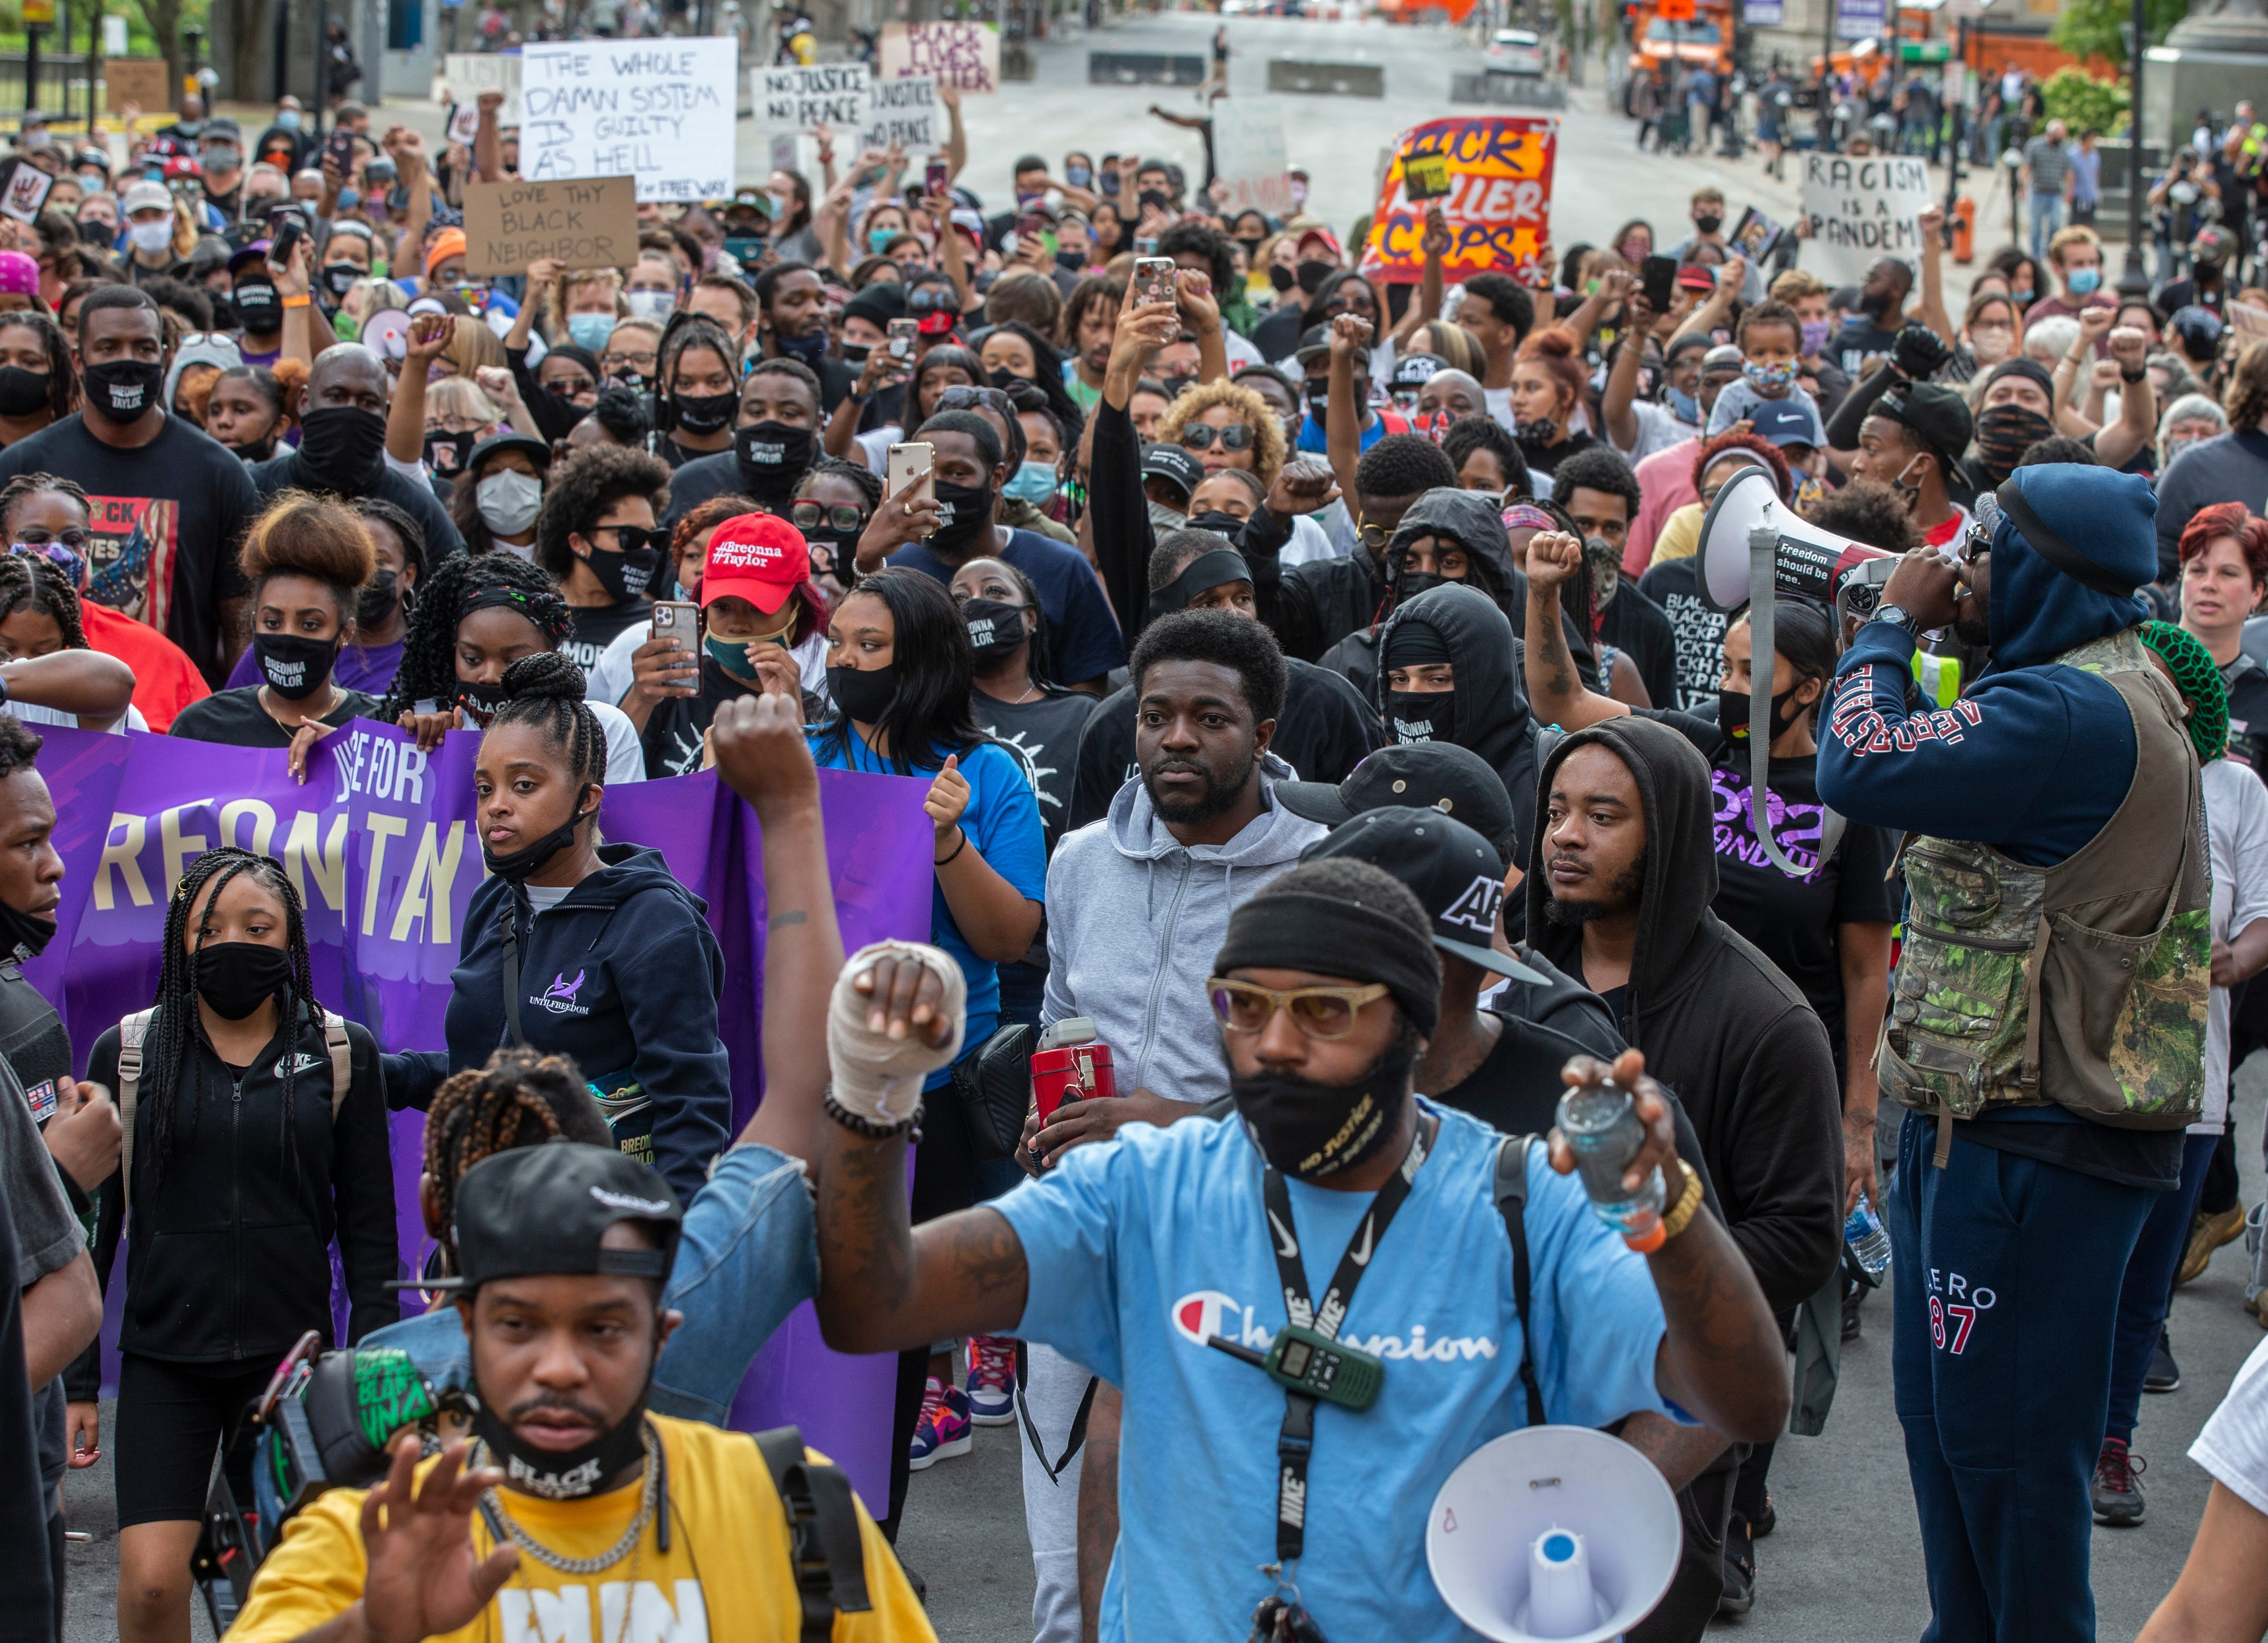 Breonna Taylor protests: Louisville police used flash bangs before curfew; Chicago, Boston and New Yorksee protests Friday